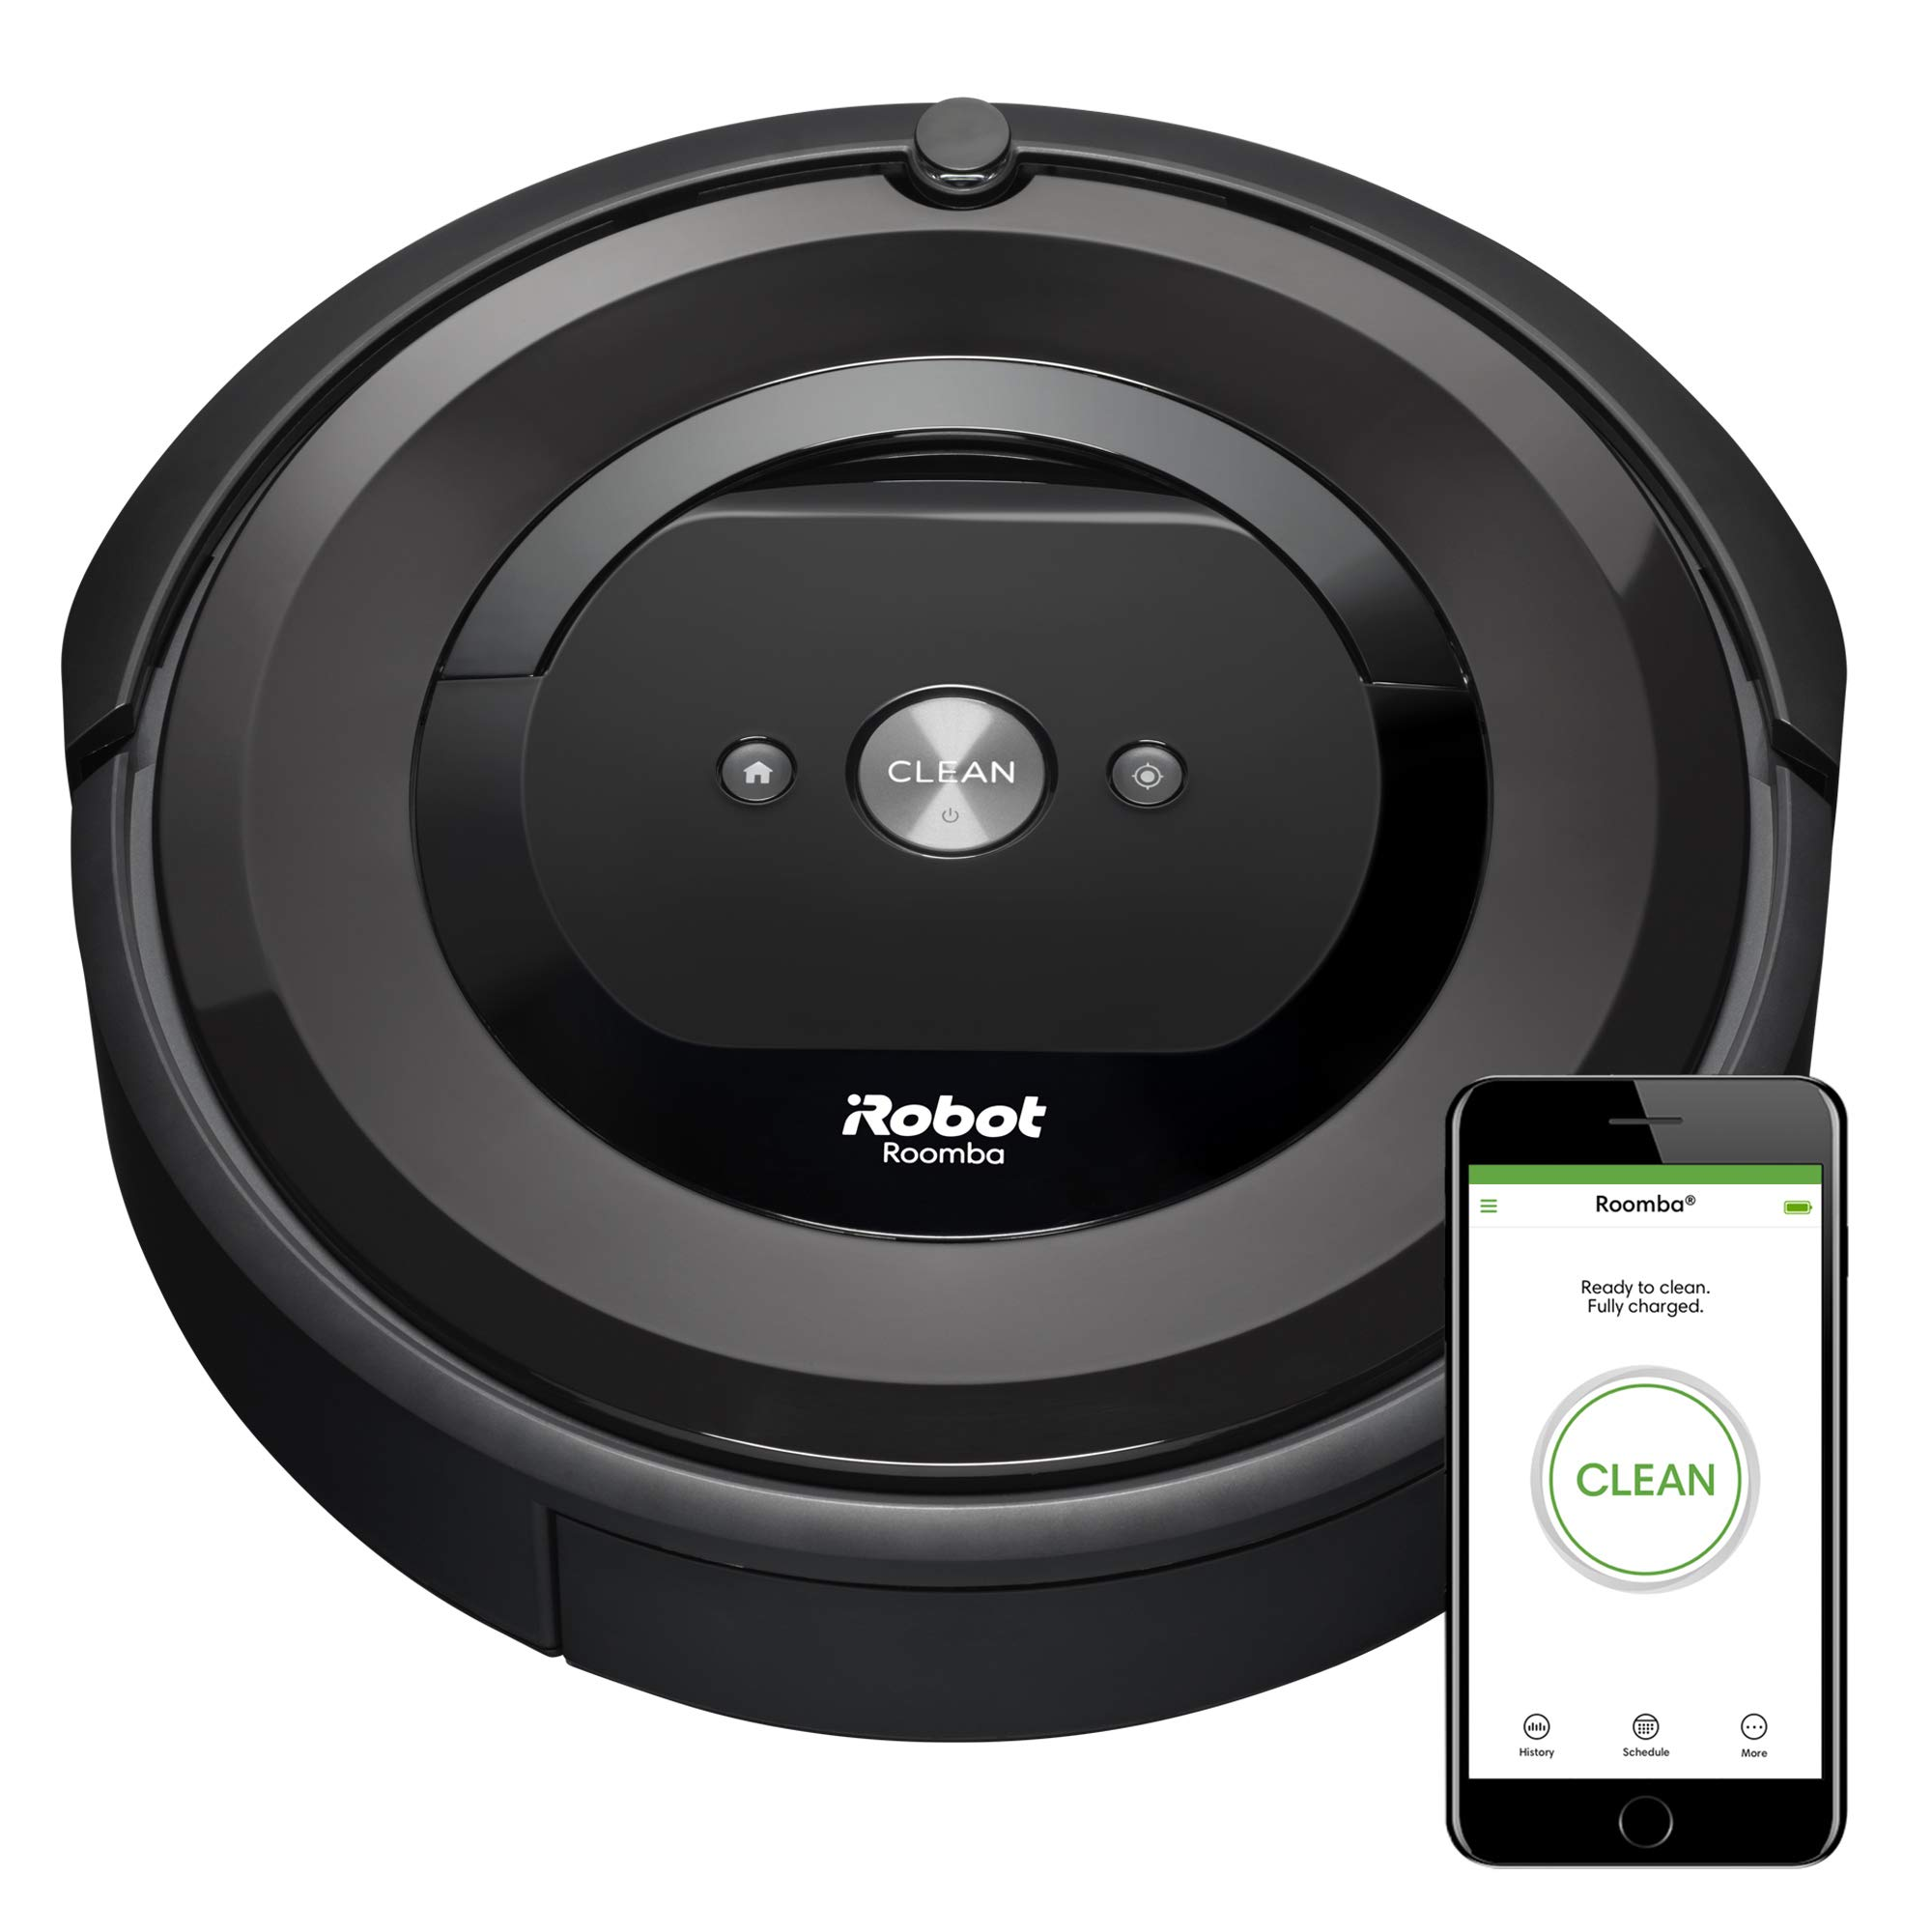 iRobot Roomba E5 (5150) Robot Vacuum - Wi-Fi Connected, Works with Alexa, Ideal for Pet Hair, Carpets, Hard, Self-Charging by iRobot